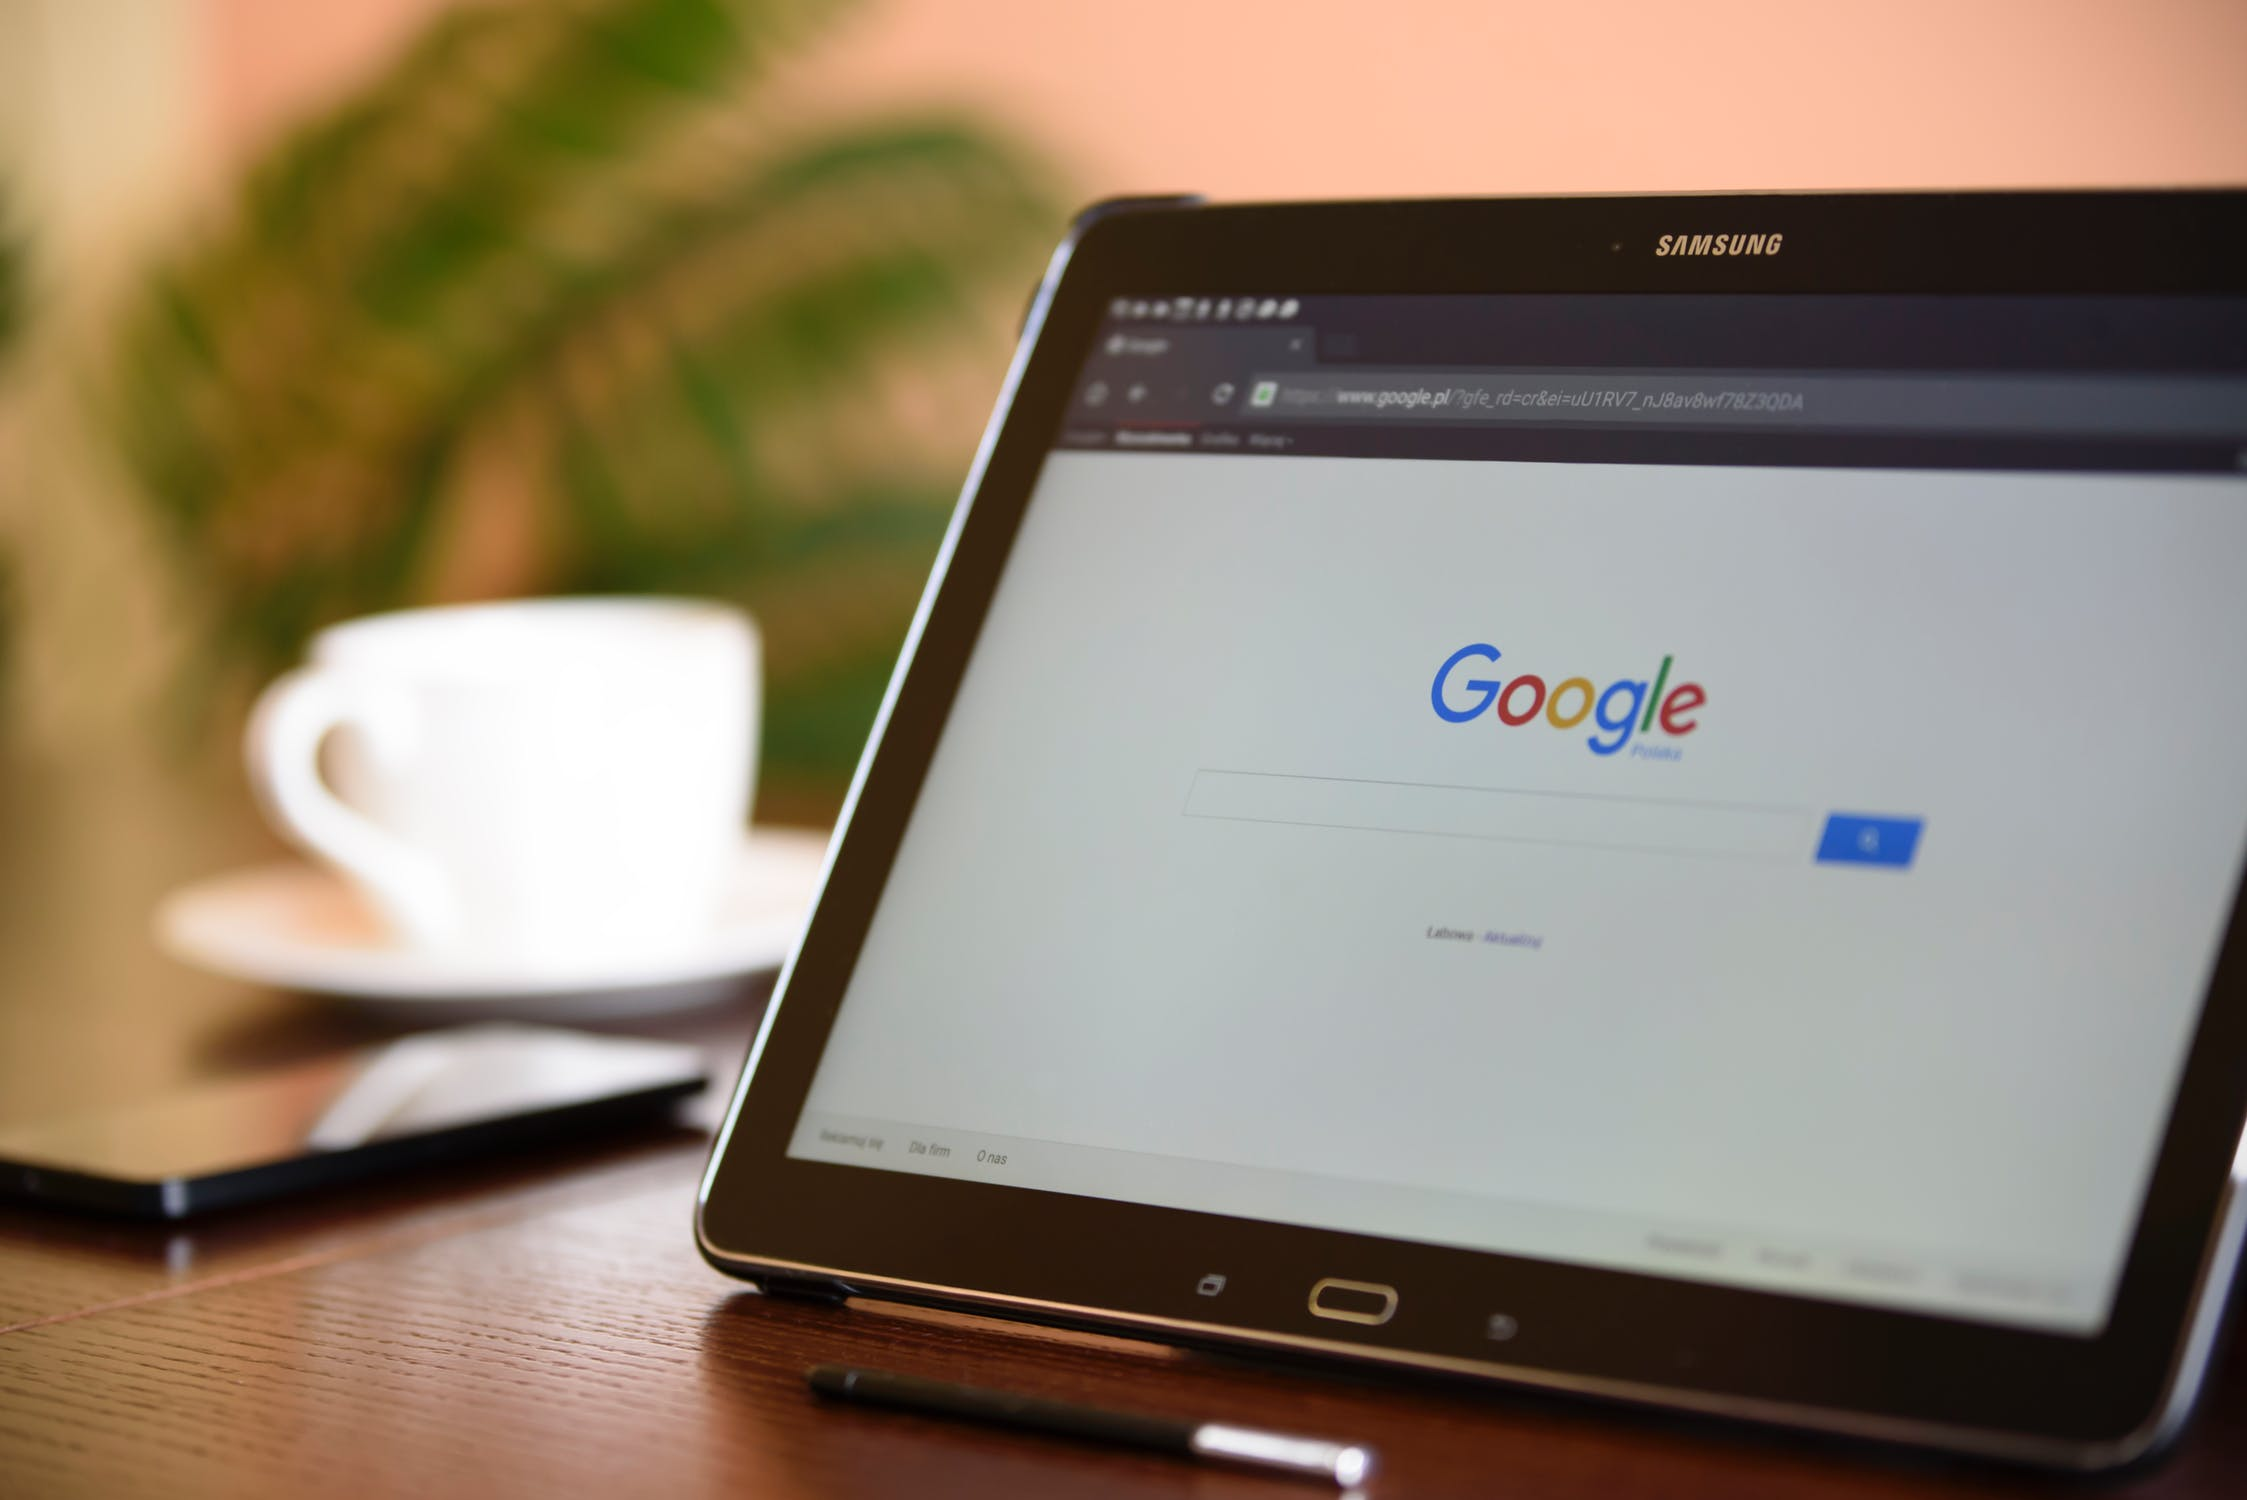 Google Pay Migrates To Desktops and iOS Devices